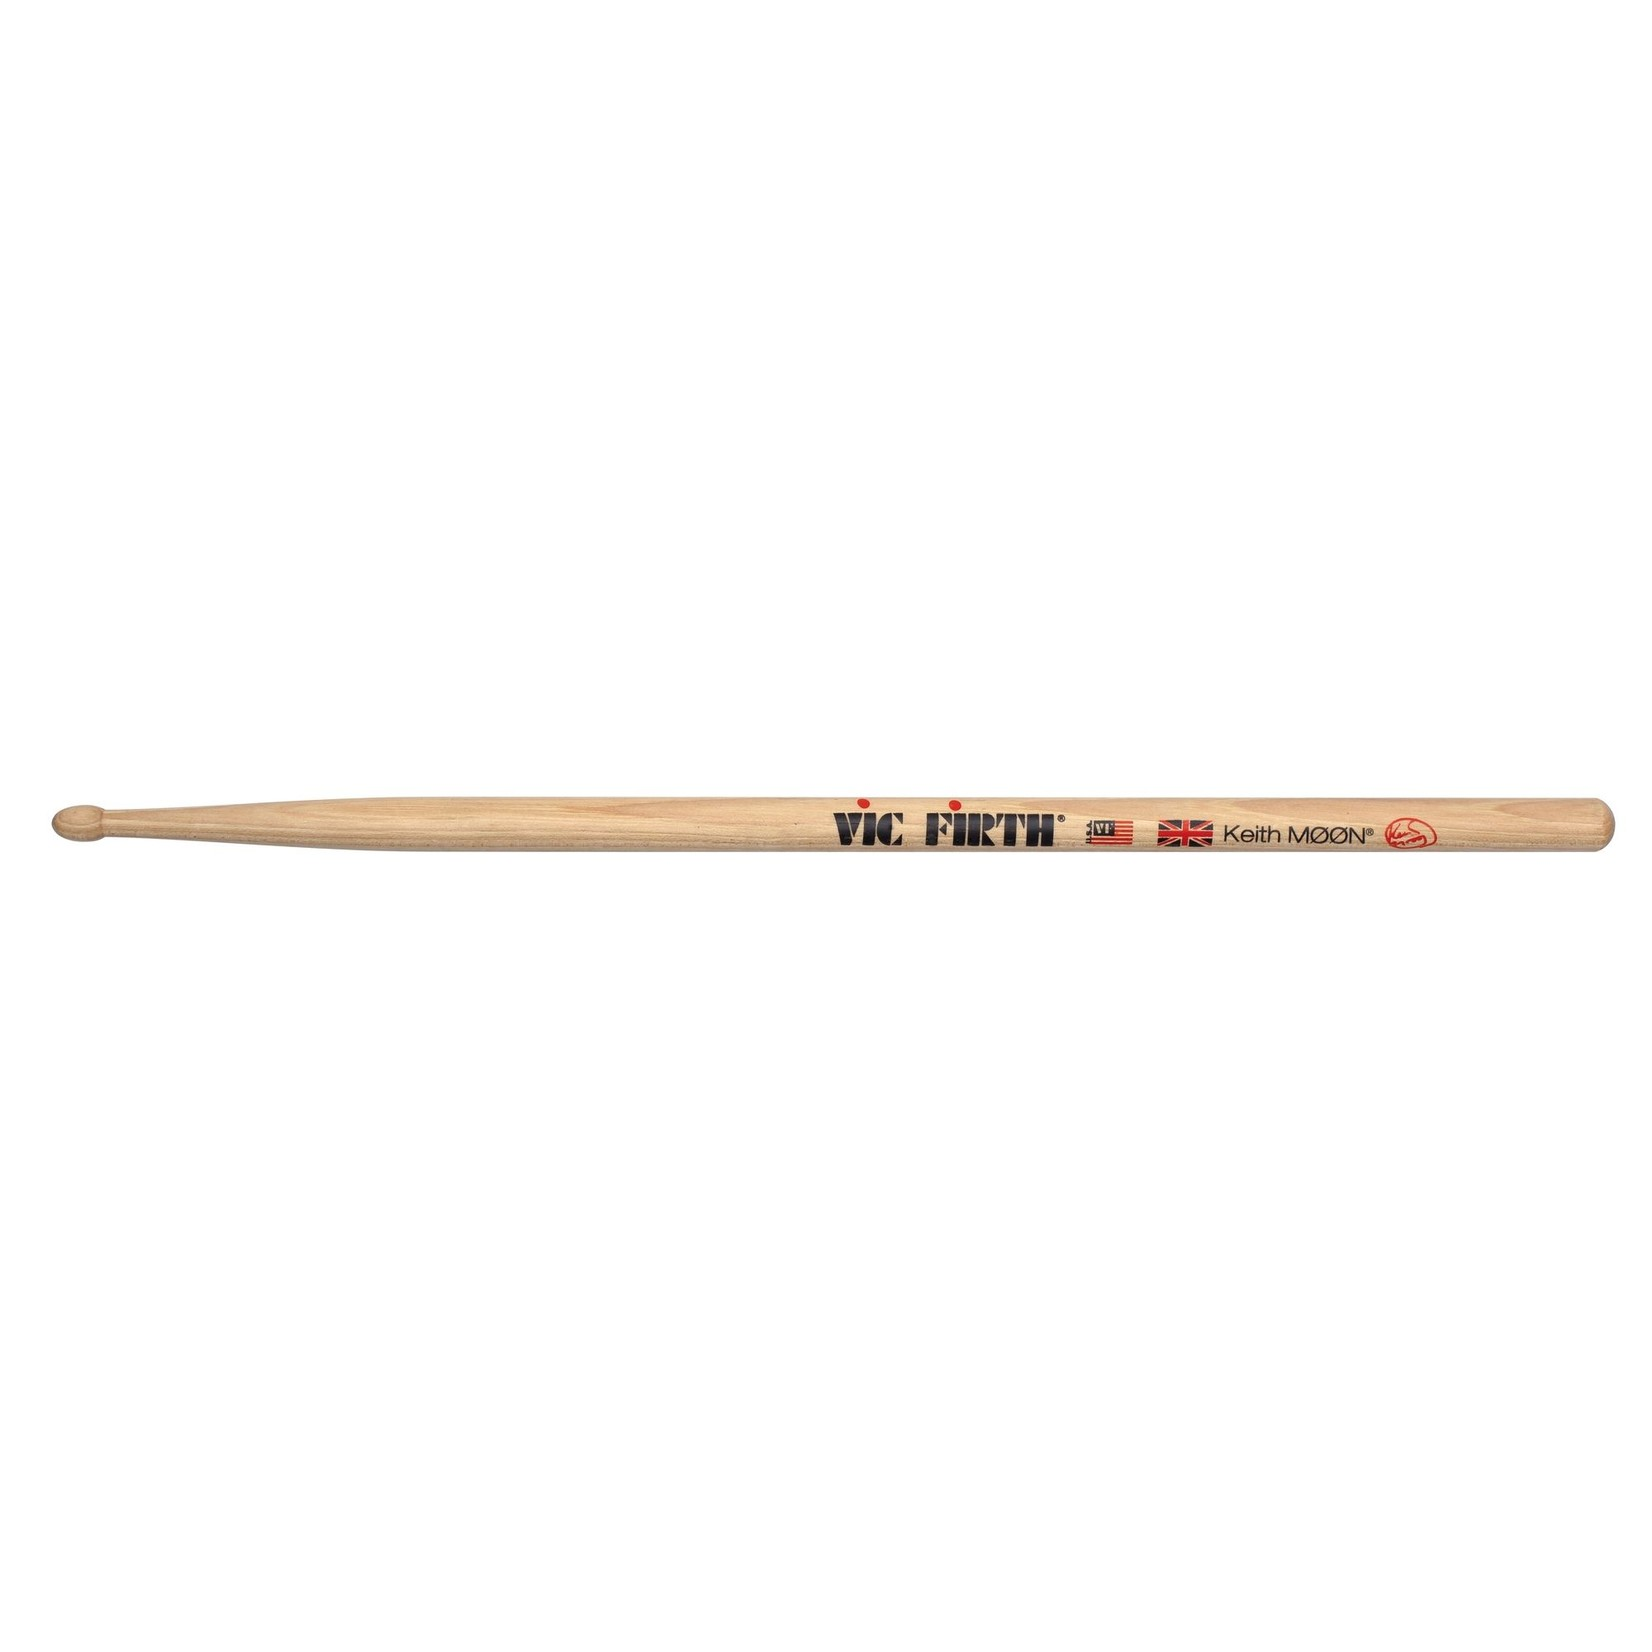 Vic Firth Vic Firth Signature Series -- Keith Moon